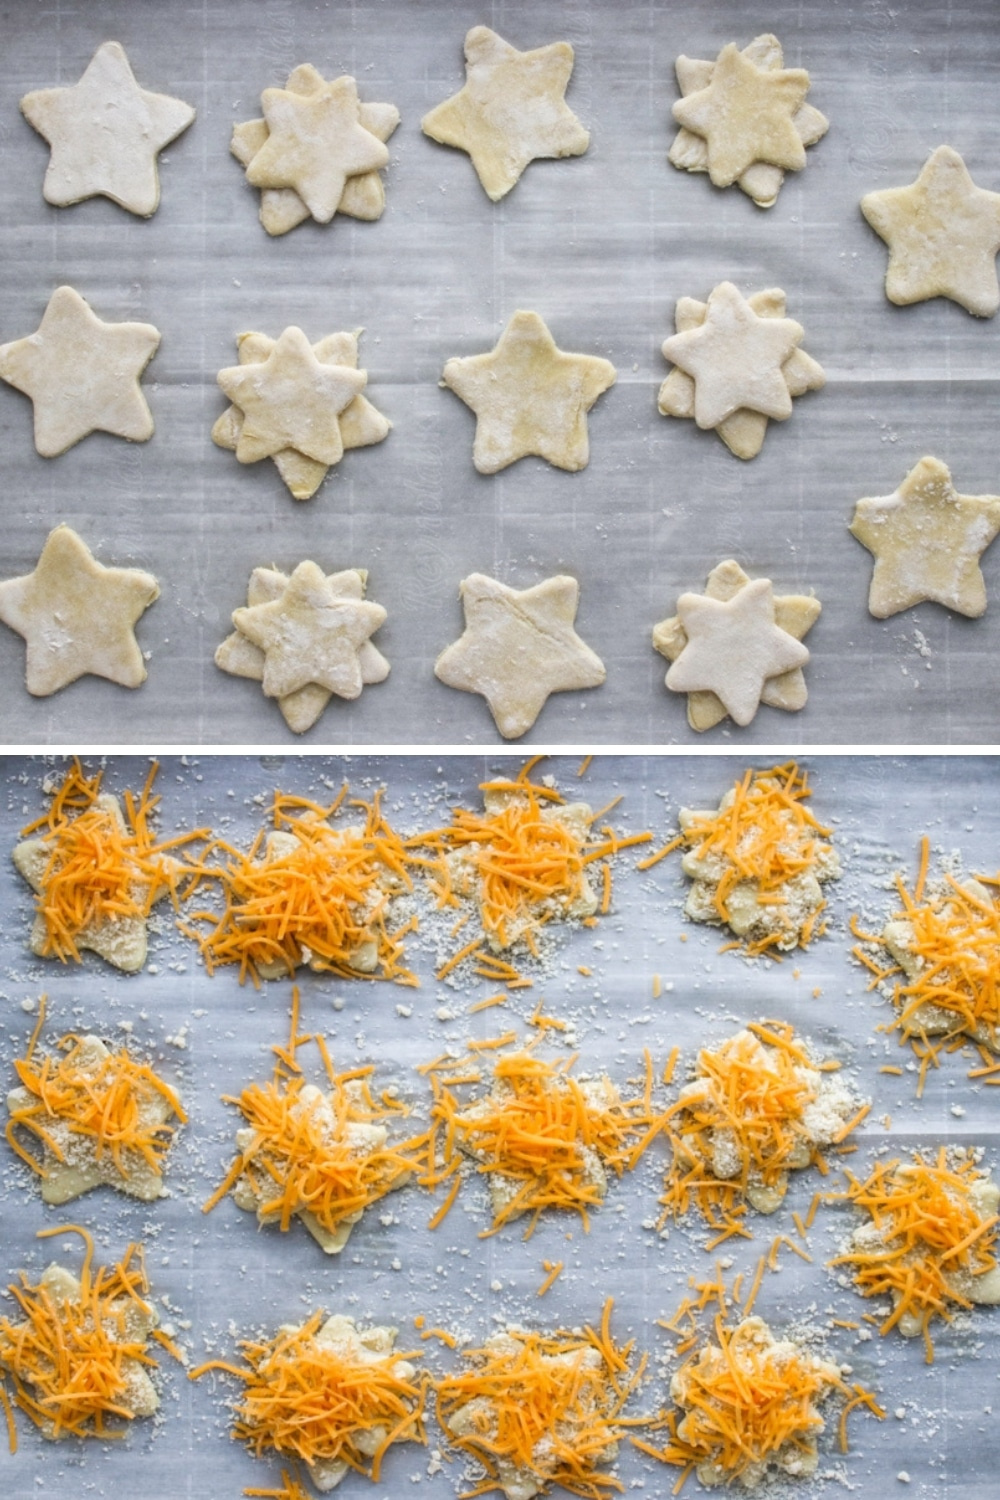 Collage showing raw puff pastry stars plain and topped with cheese